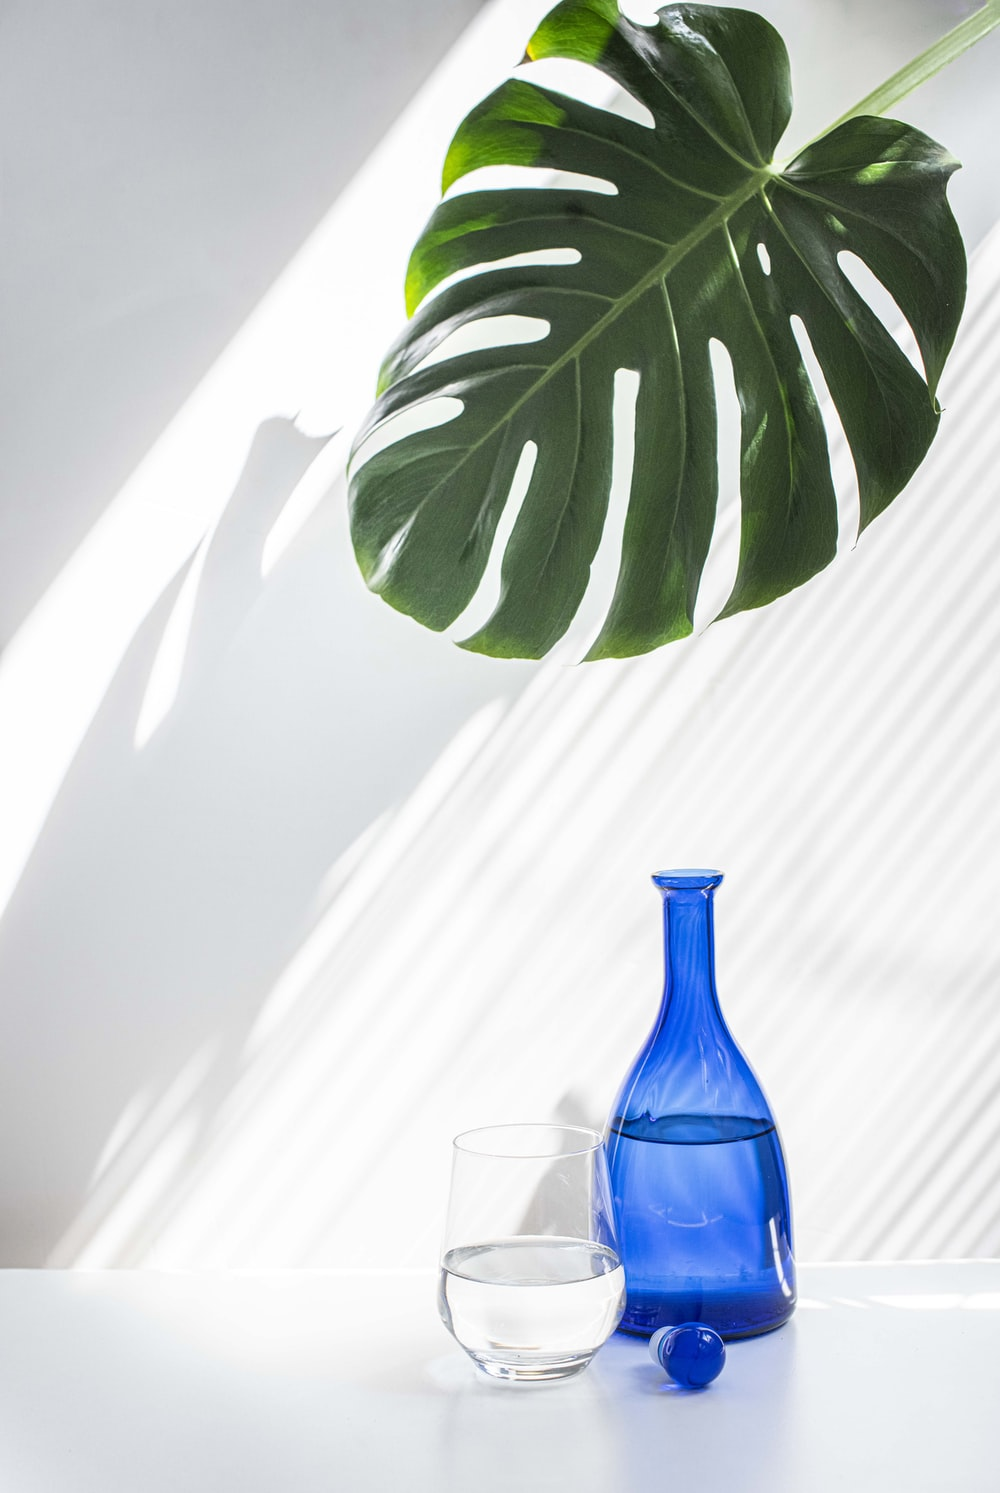 green plant in blue glass vase